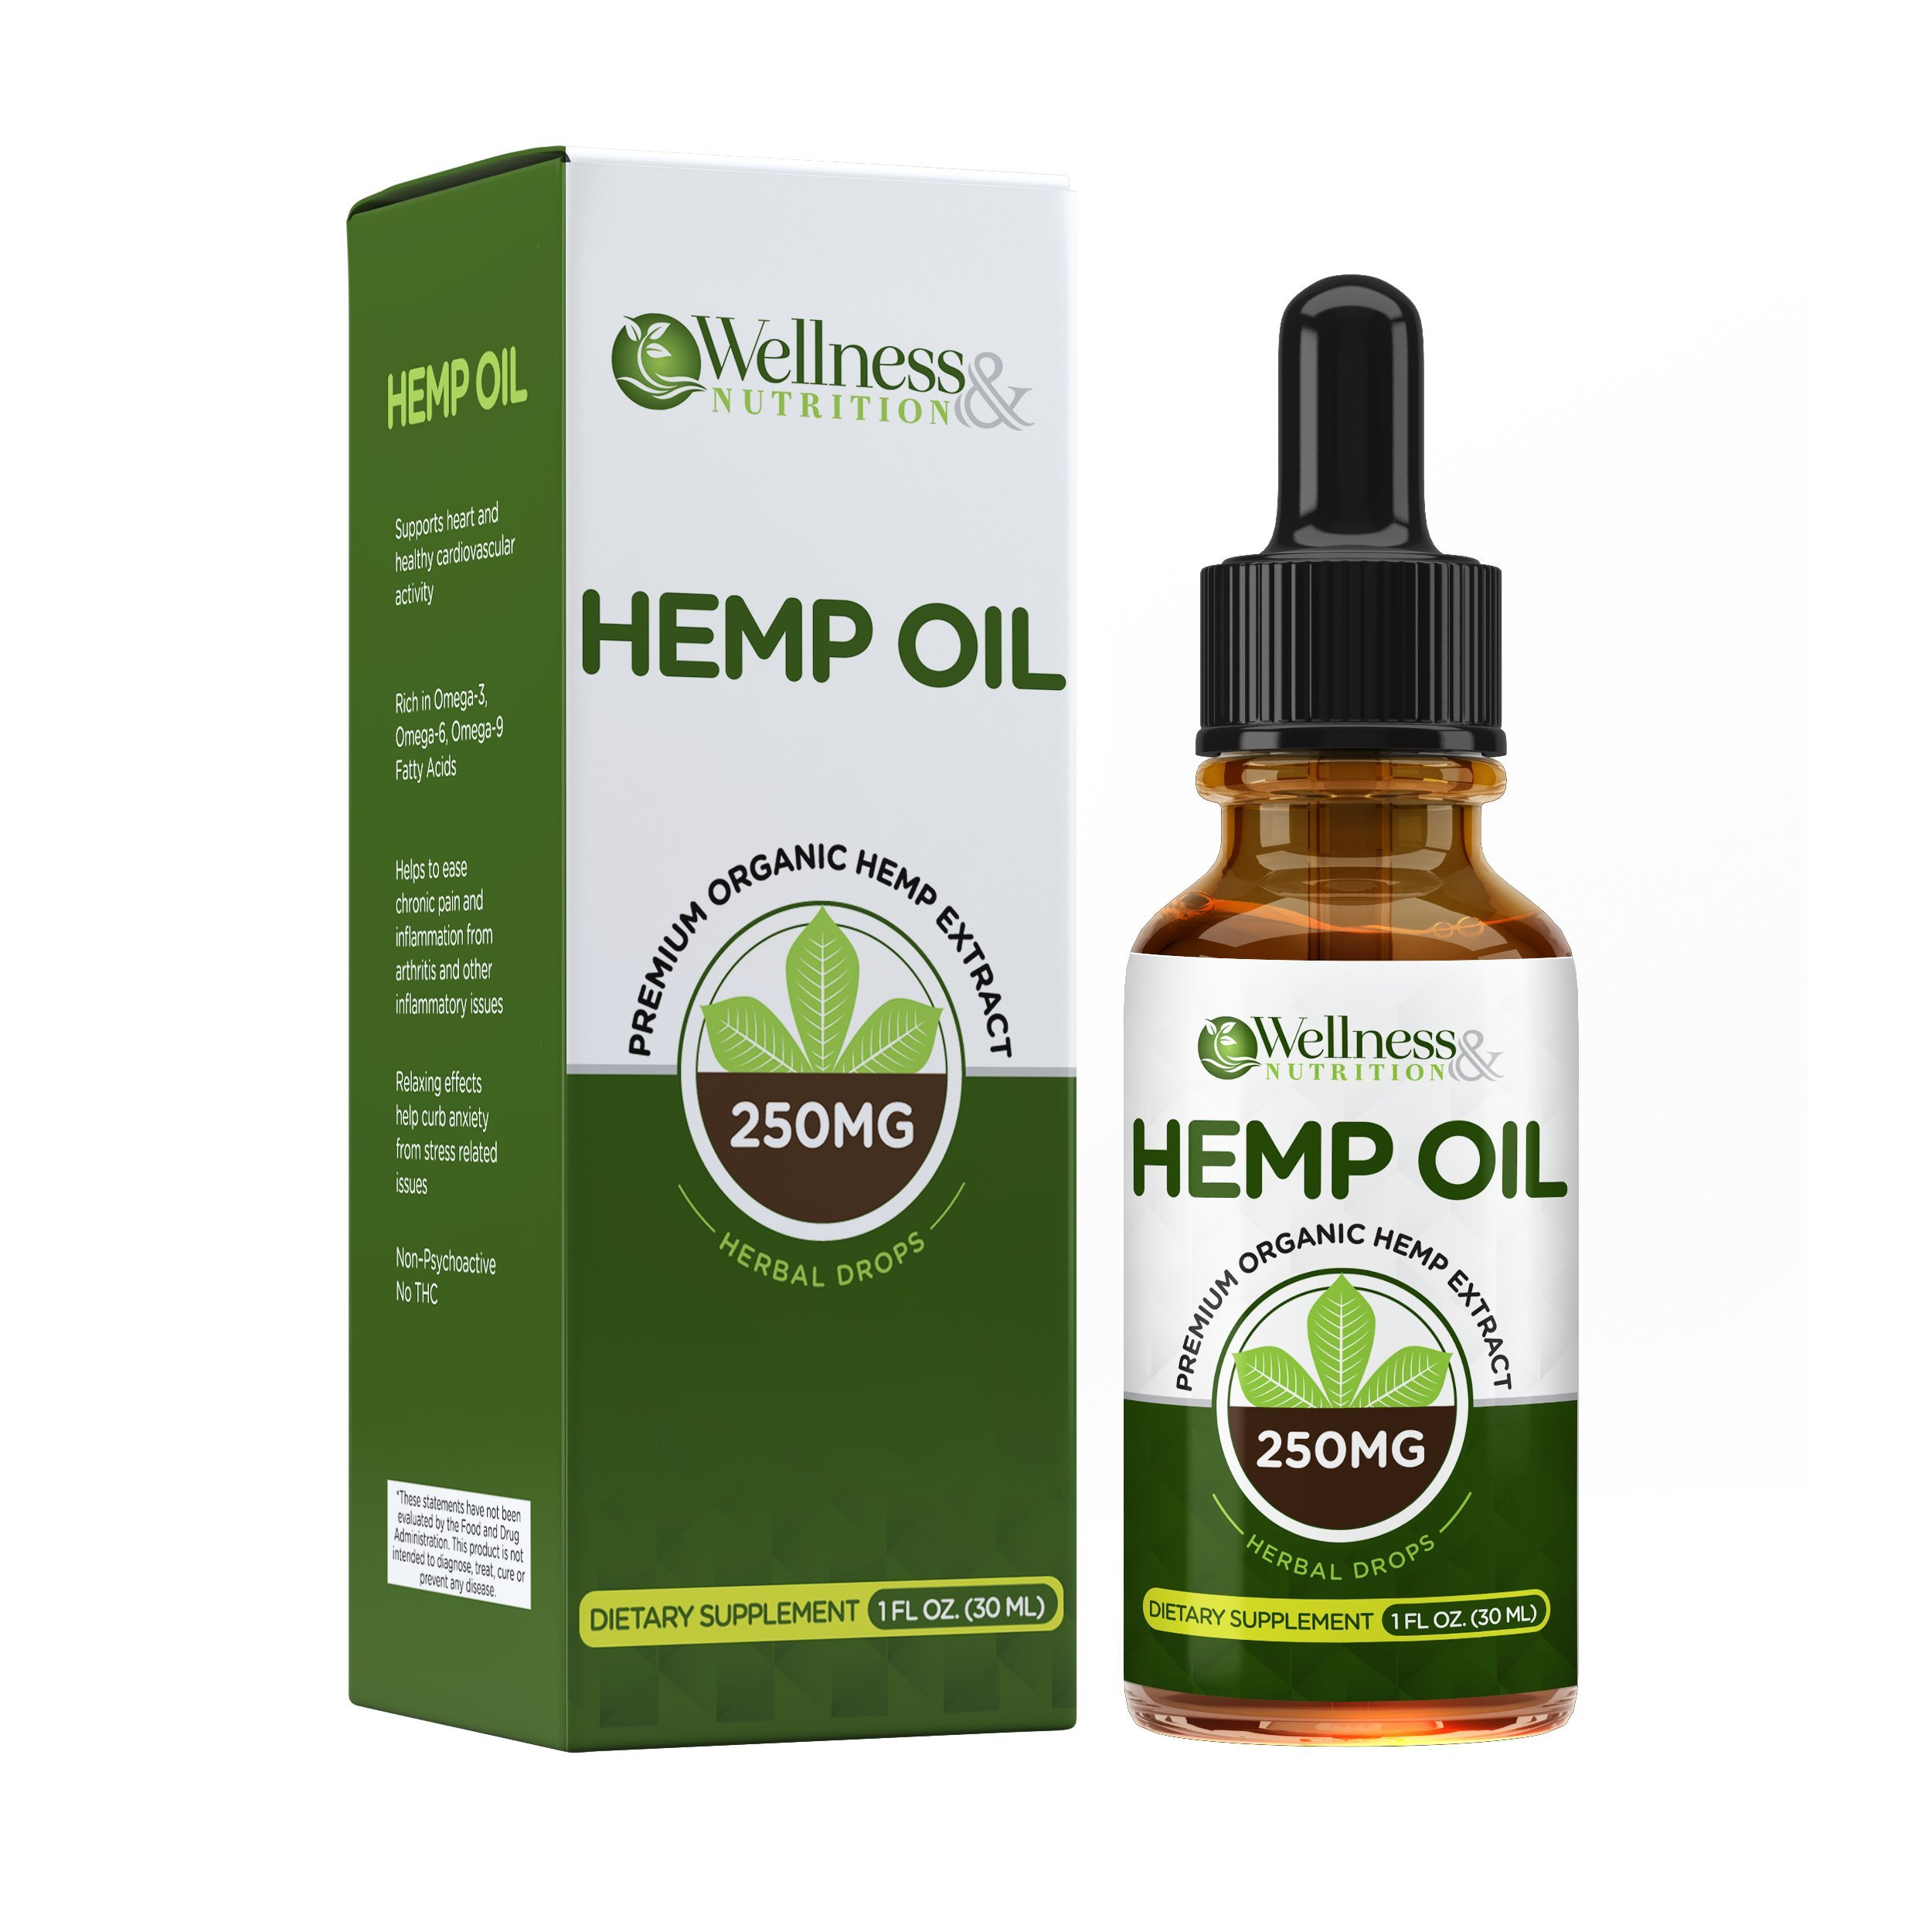 Hemp Oil Extract (1 FL OZ) :: Premium Formula :: All-Natural Wellness Booster :: Promotes Relaxation :: One Month Supply :: Wellness and Nutrition